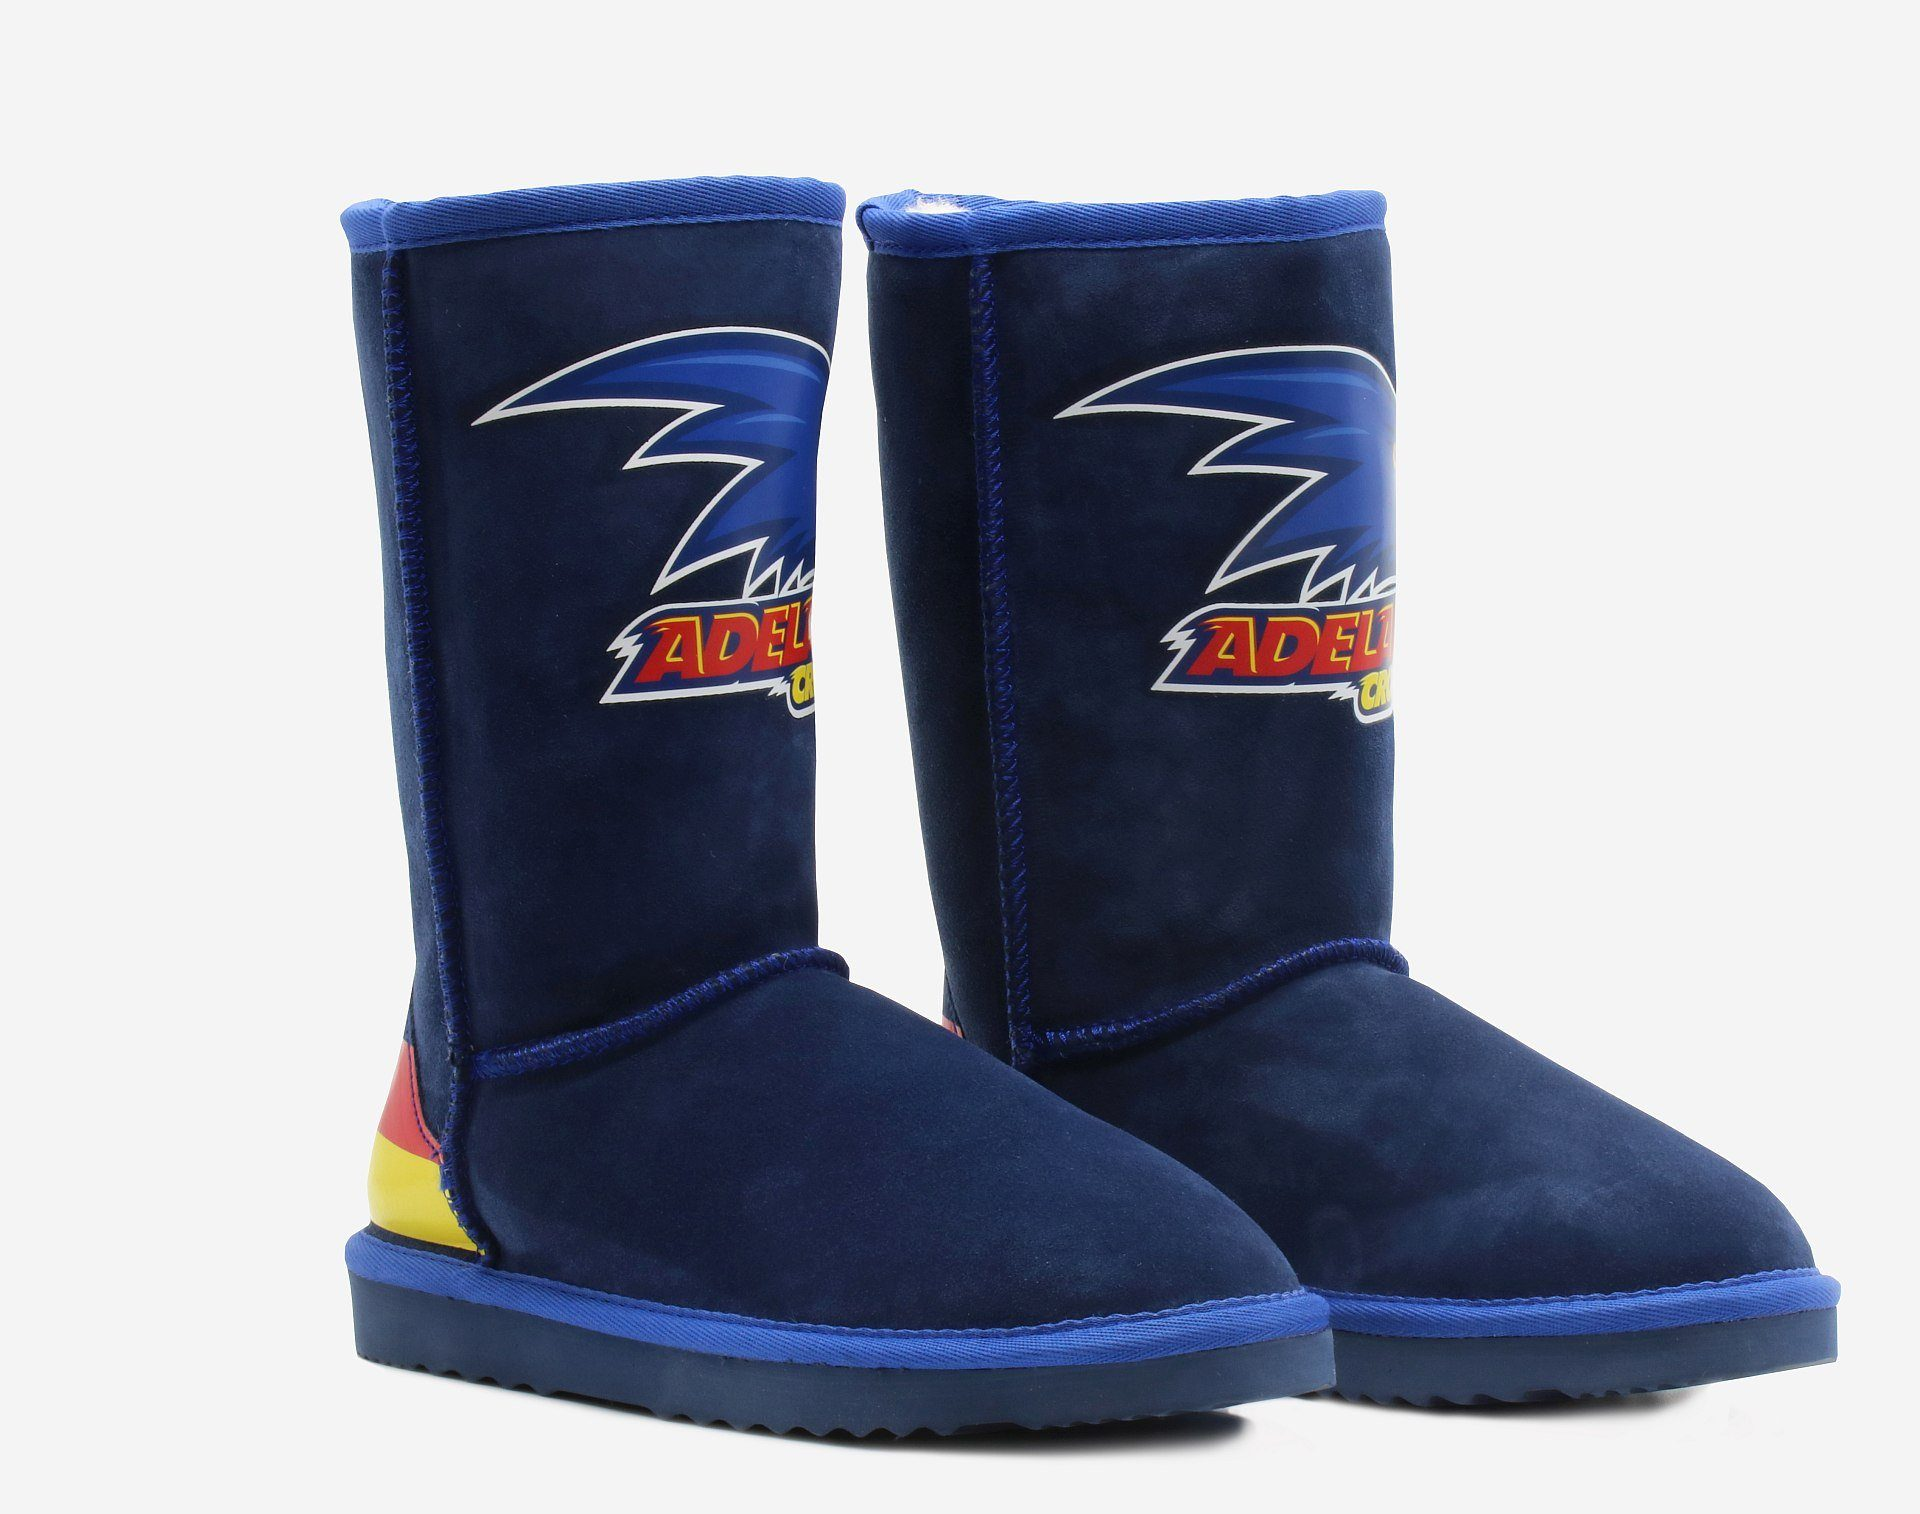 AFL Adult Ugg Boots - Adelaide Crows Footwear Team Uggs